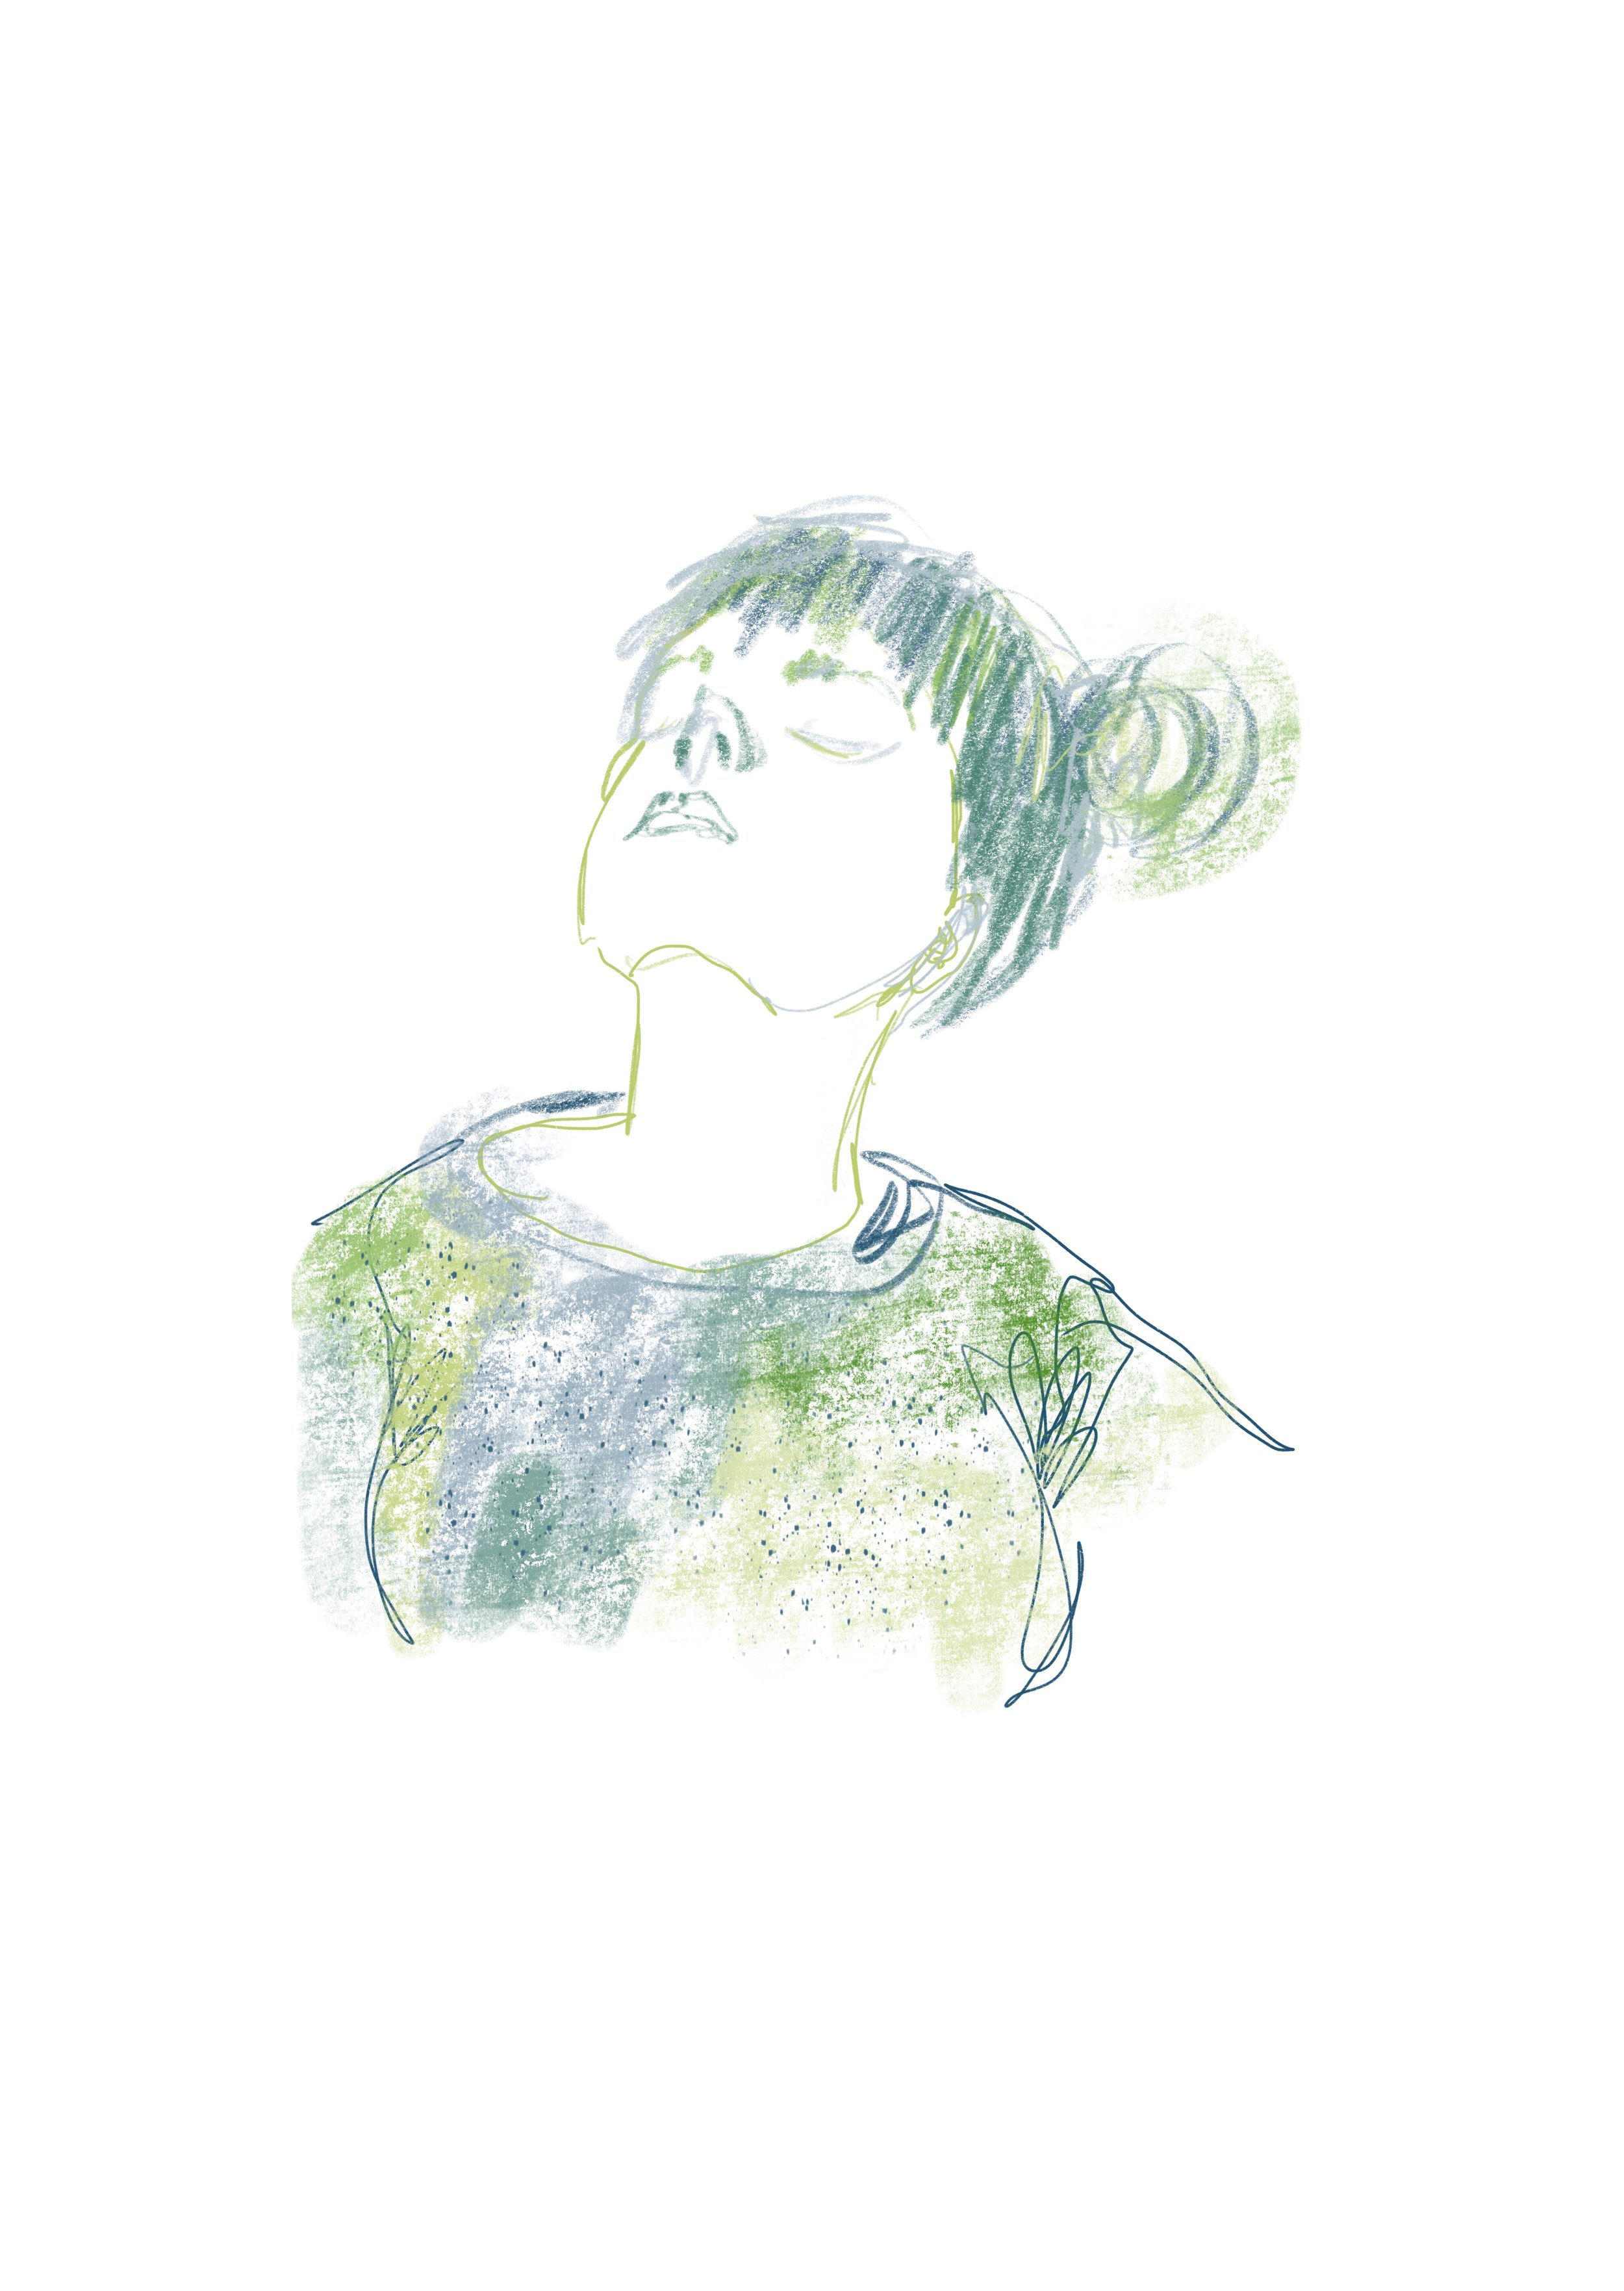 Illustrator for WEN's 'Soil Sisters'  an exciting 3-year project run by WEN that supports recovery and development of vulnerable women in traumatic transitions within women's refuge settings.- building collaborative, therapeutic garden spaces in womens' refuges across multiple locations in London. 2018 - 2020